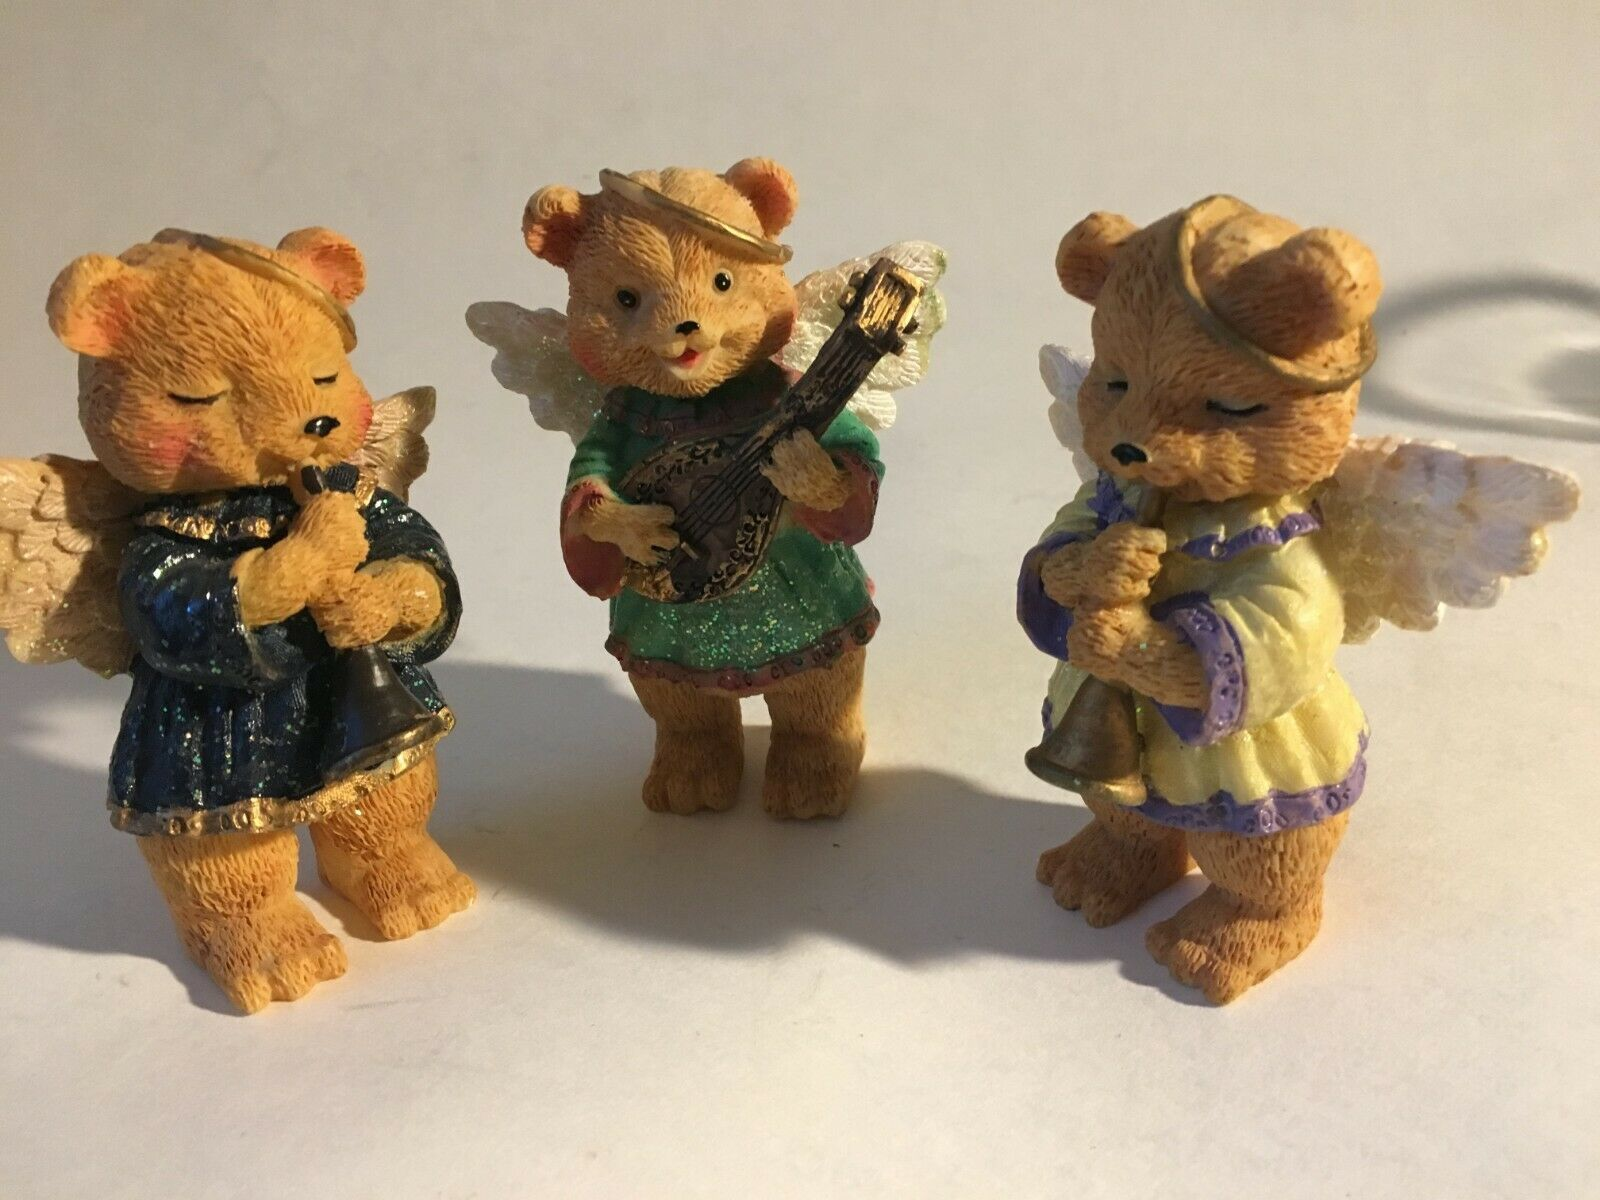 3 Bear Angels Musical Band Instruments Resin Figurine 4""